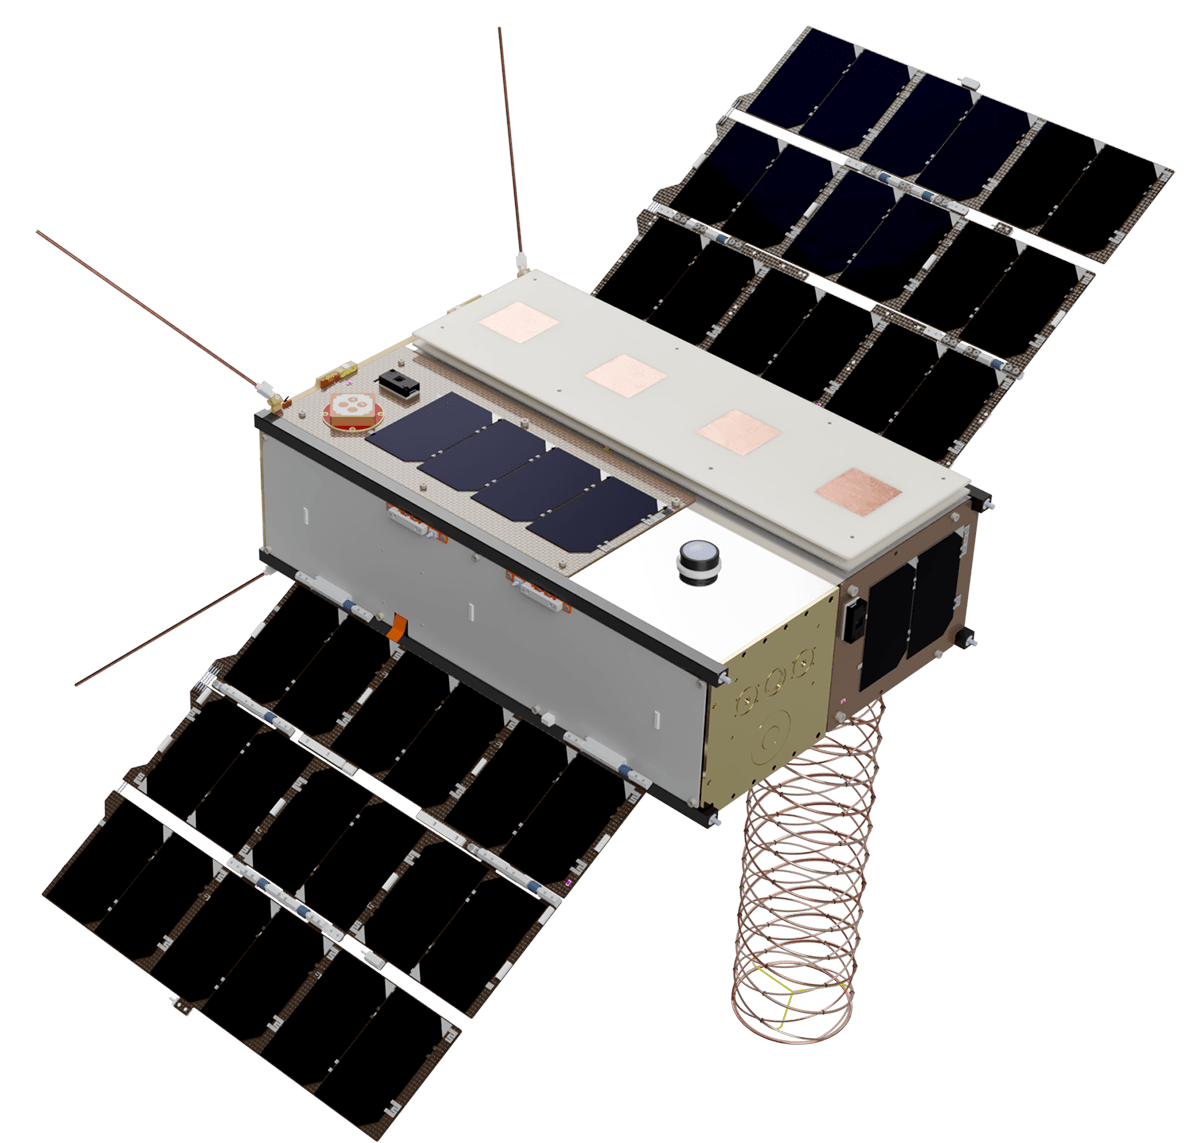 FARADAY-01 SATELLITE 3D MODEL